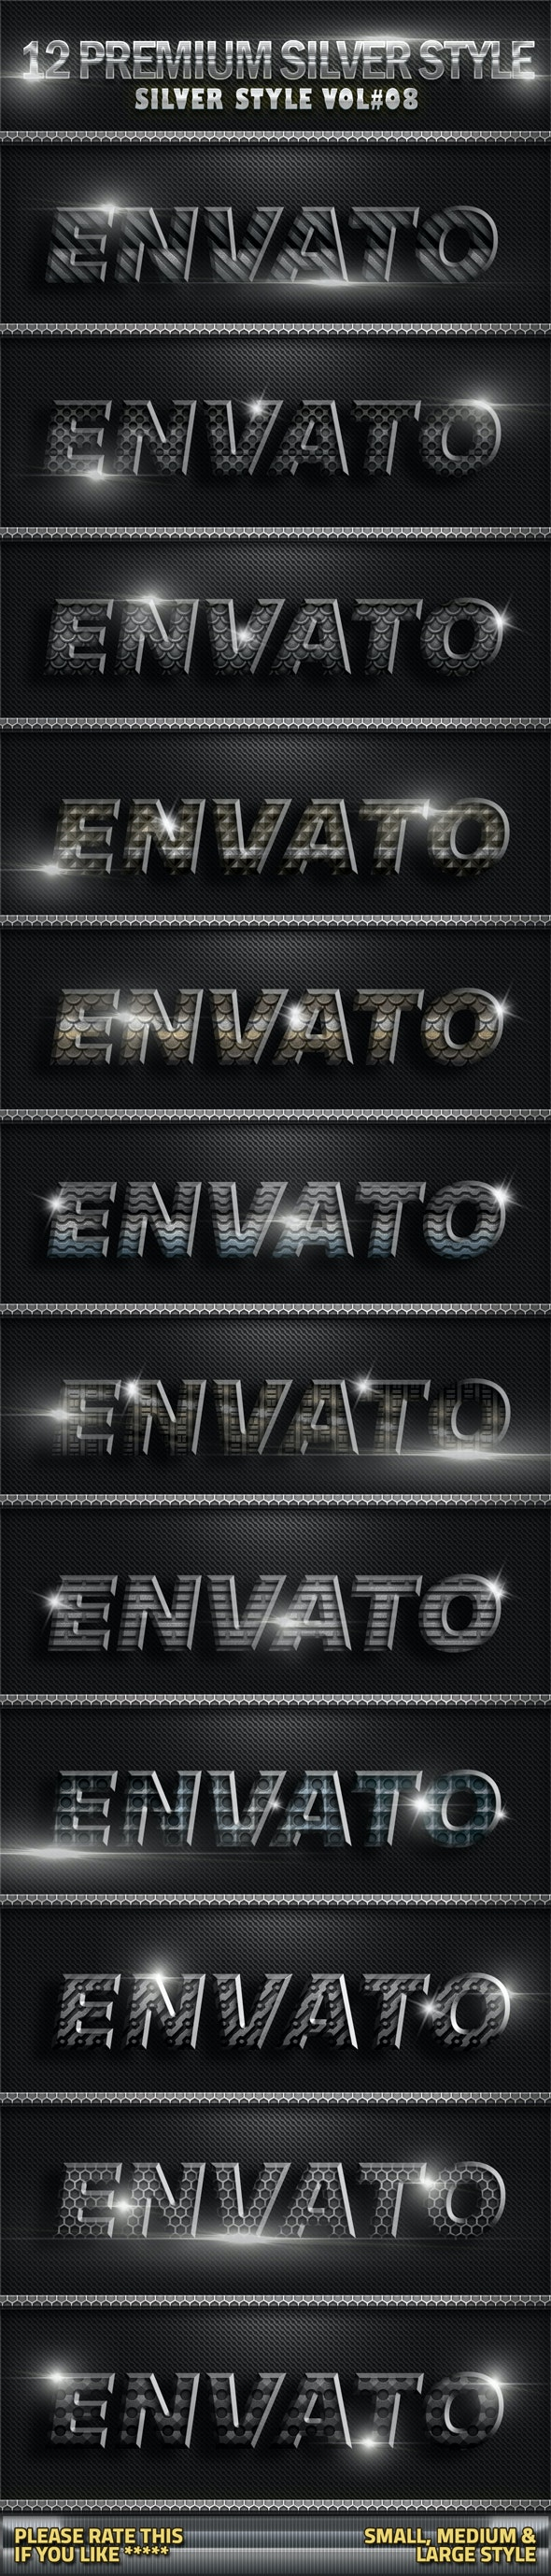 12 Metal Silver Photoshop Style V08 - Text Effects Styles